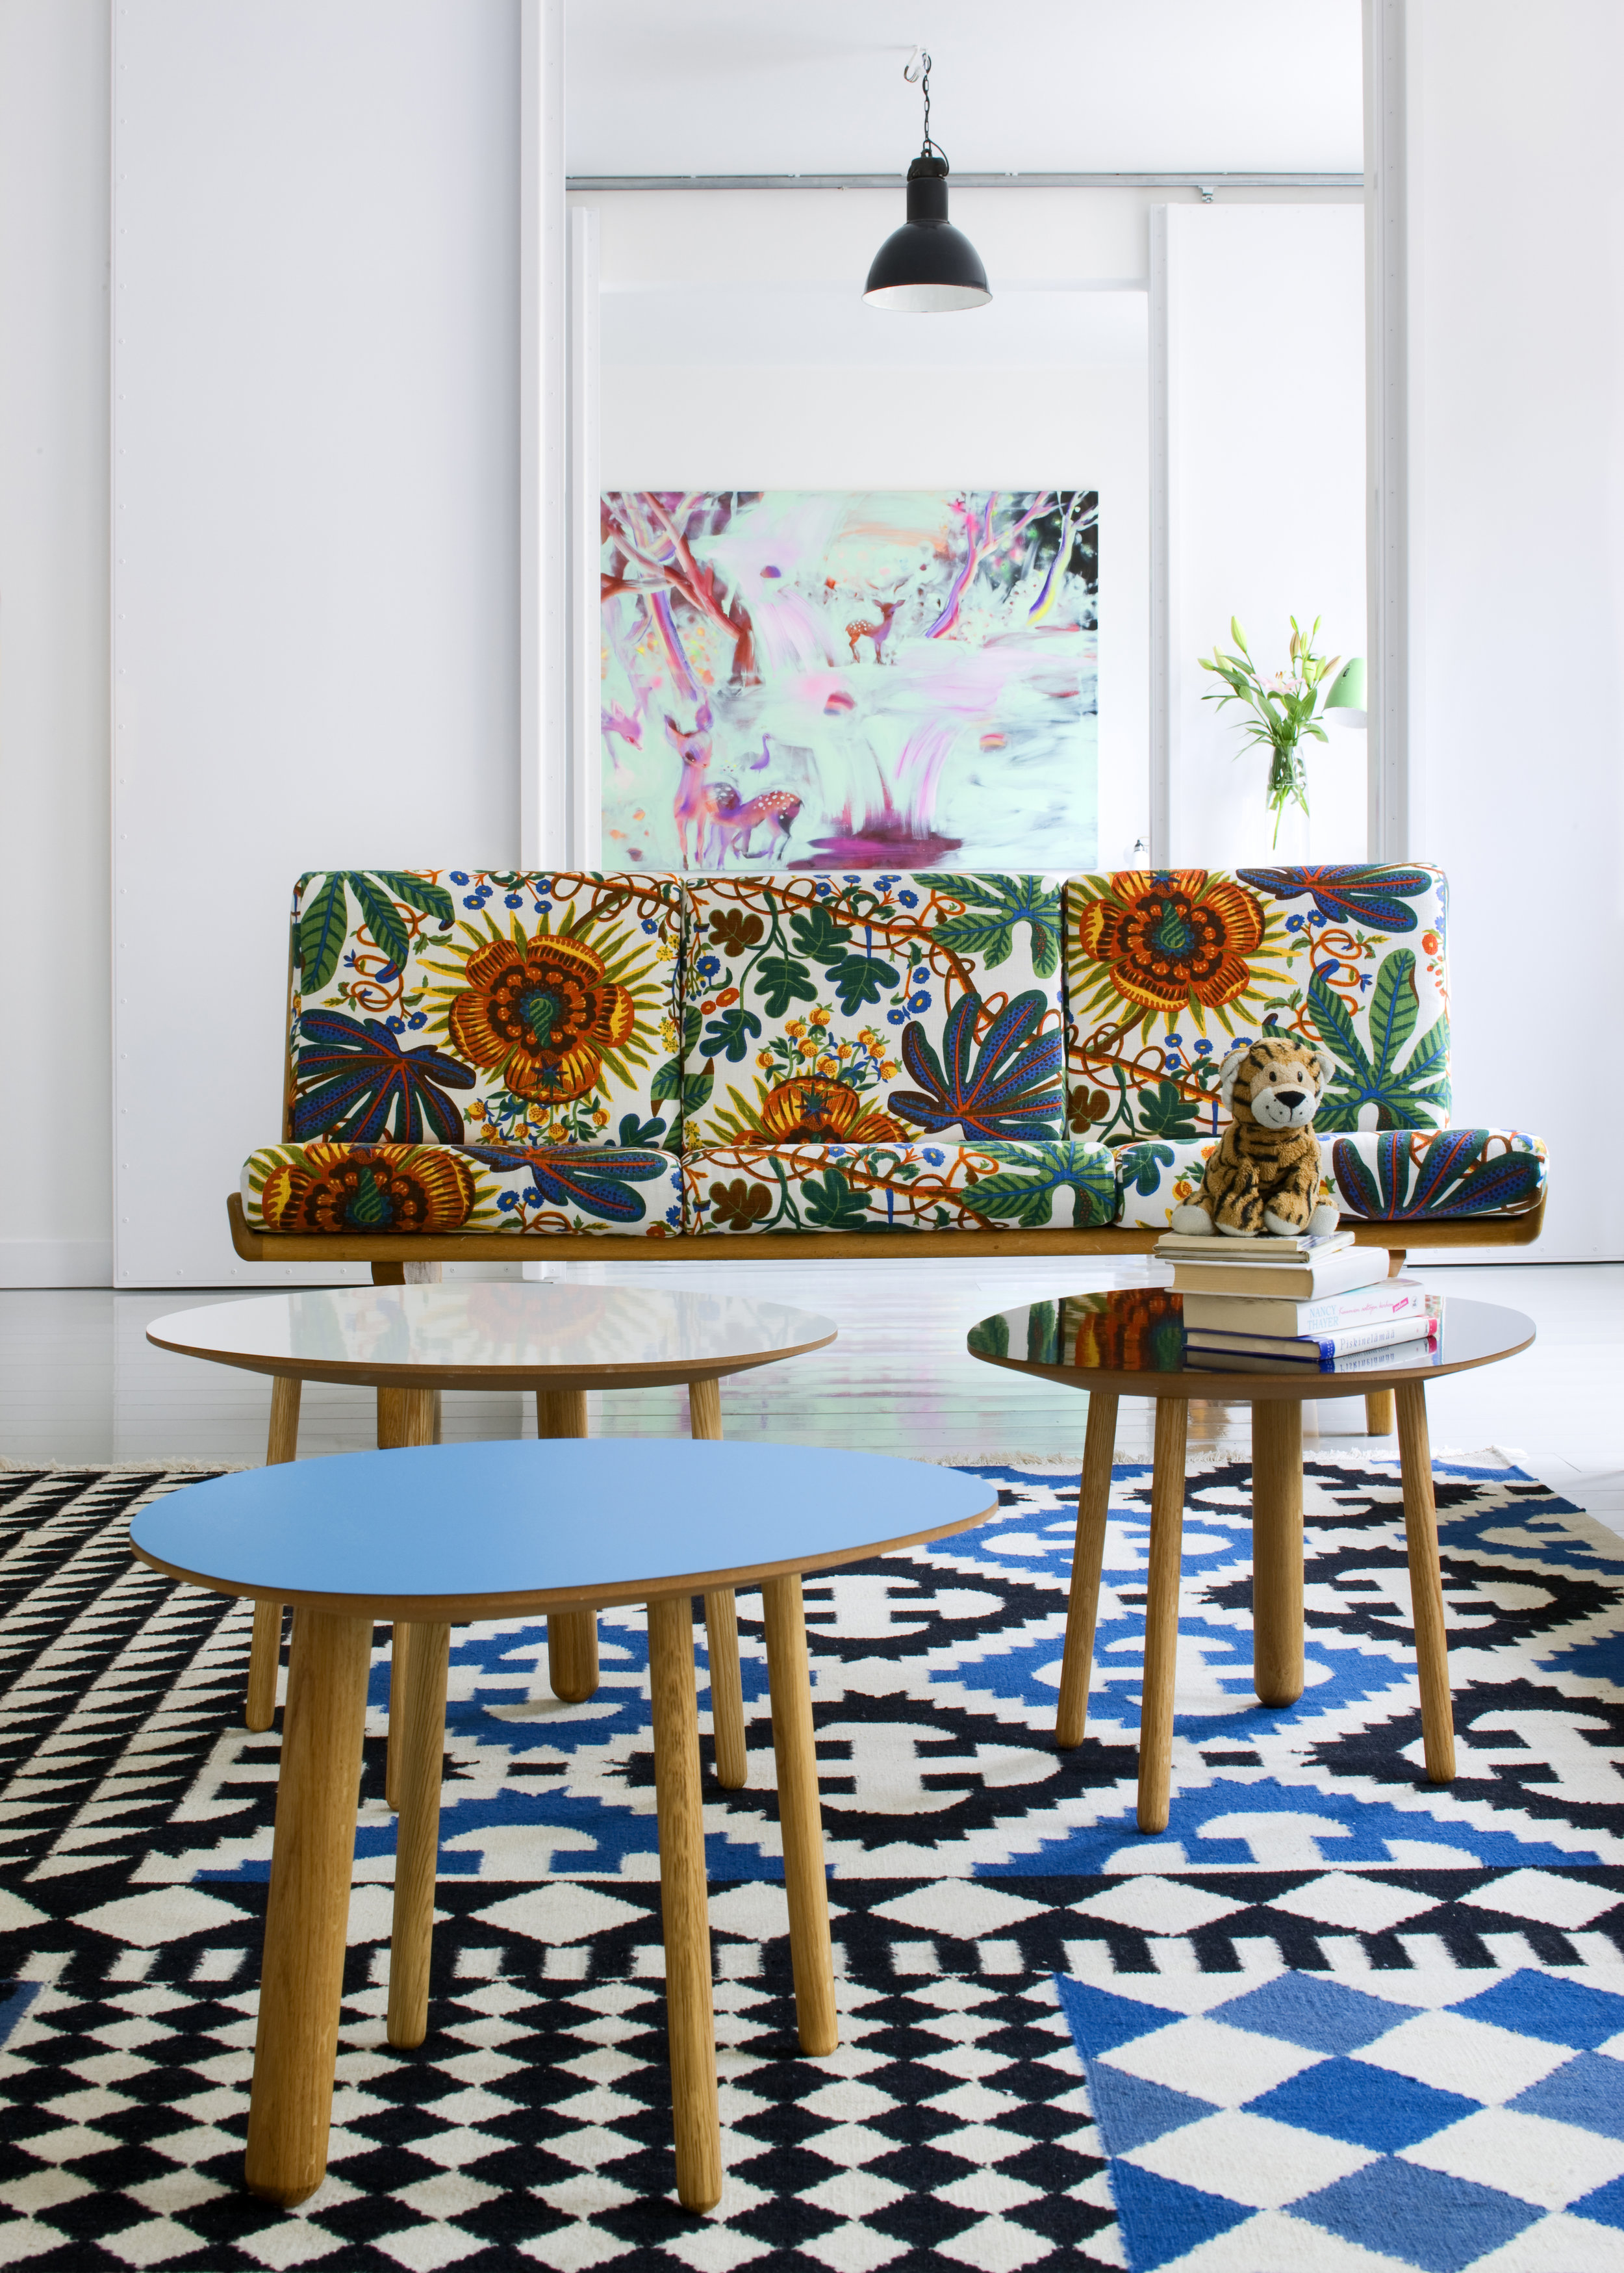 Habitek Morris tables in a colorful home